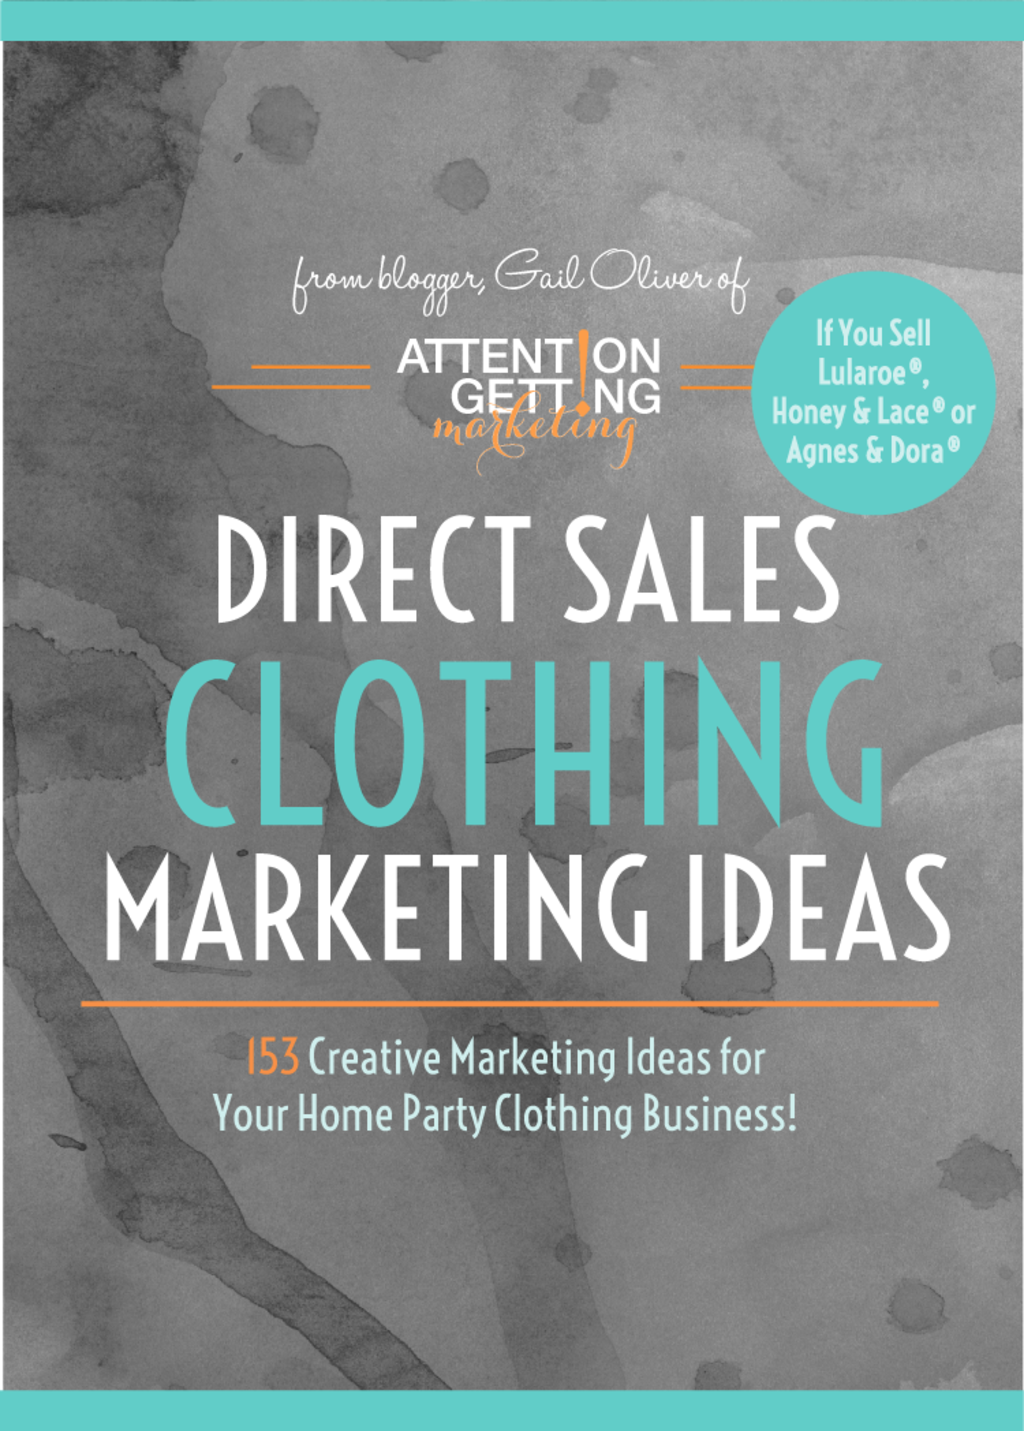 clothing business direct sales marketing ideas attention getting